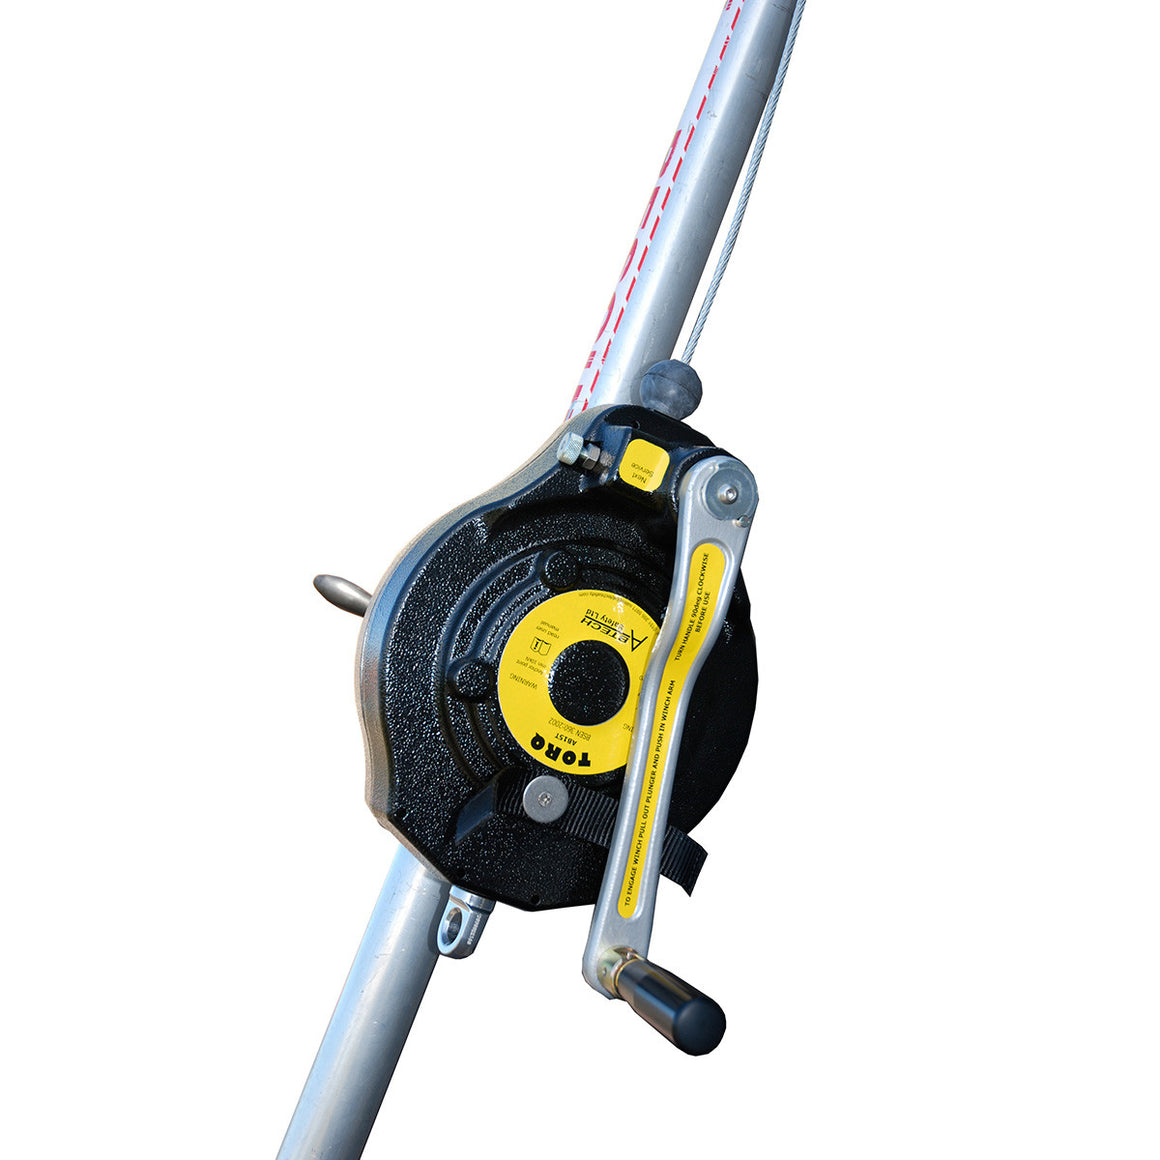 AB15RT - 15 metre Fall Arrest Recover Device from TORQ